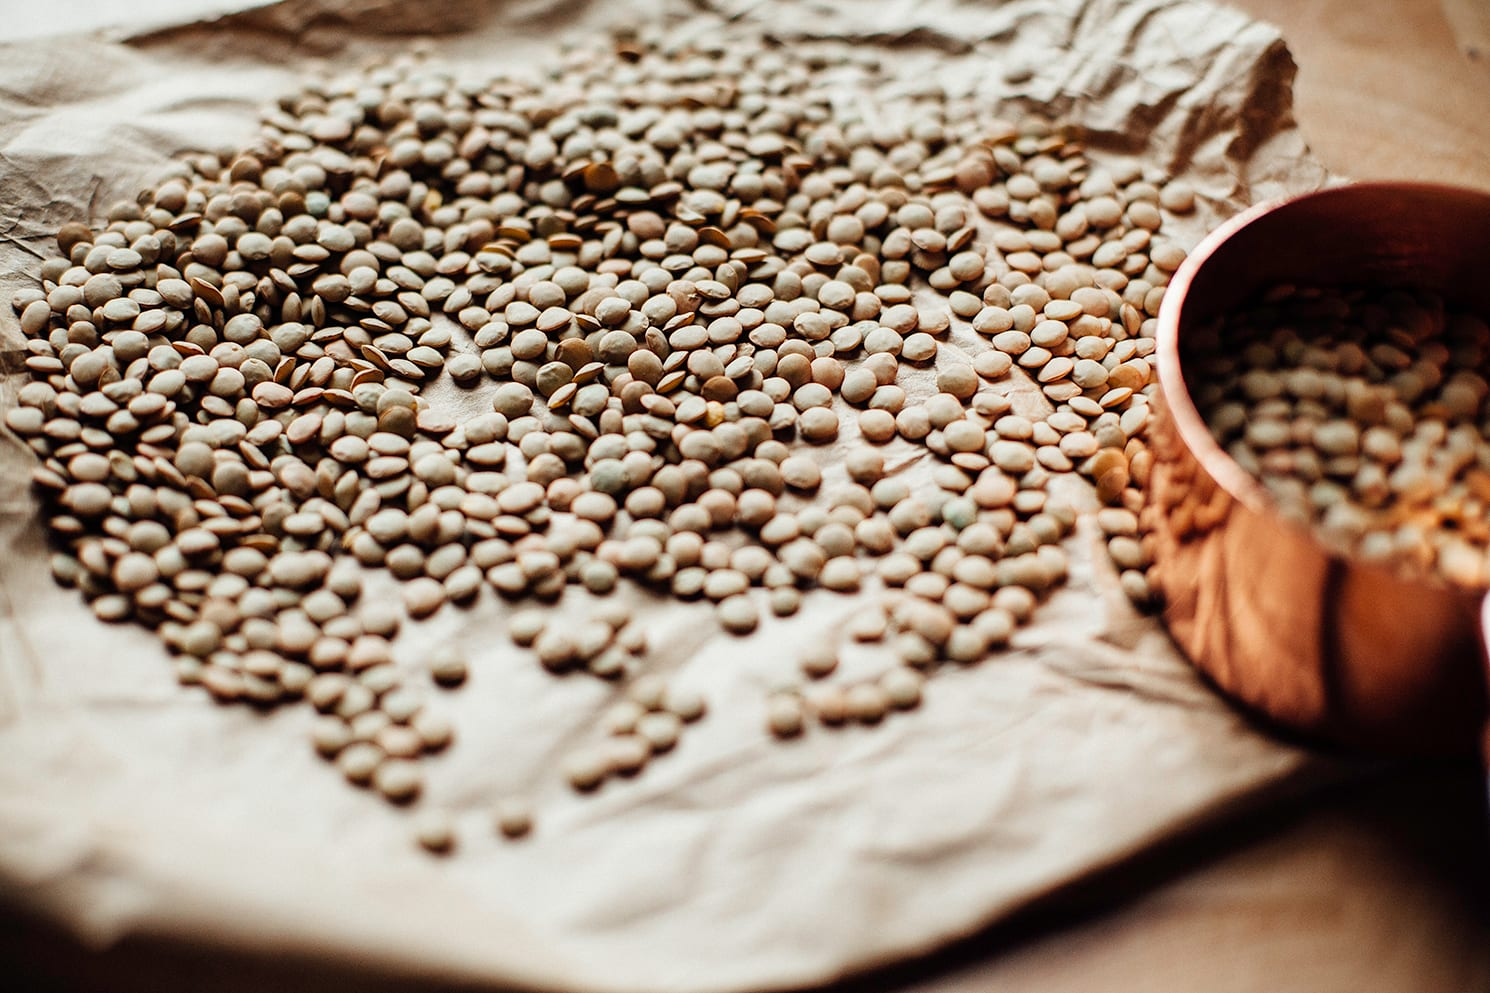 Image shows lentils scattered out on a piece of brown paper.